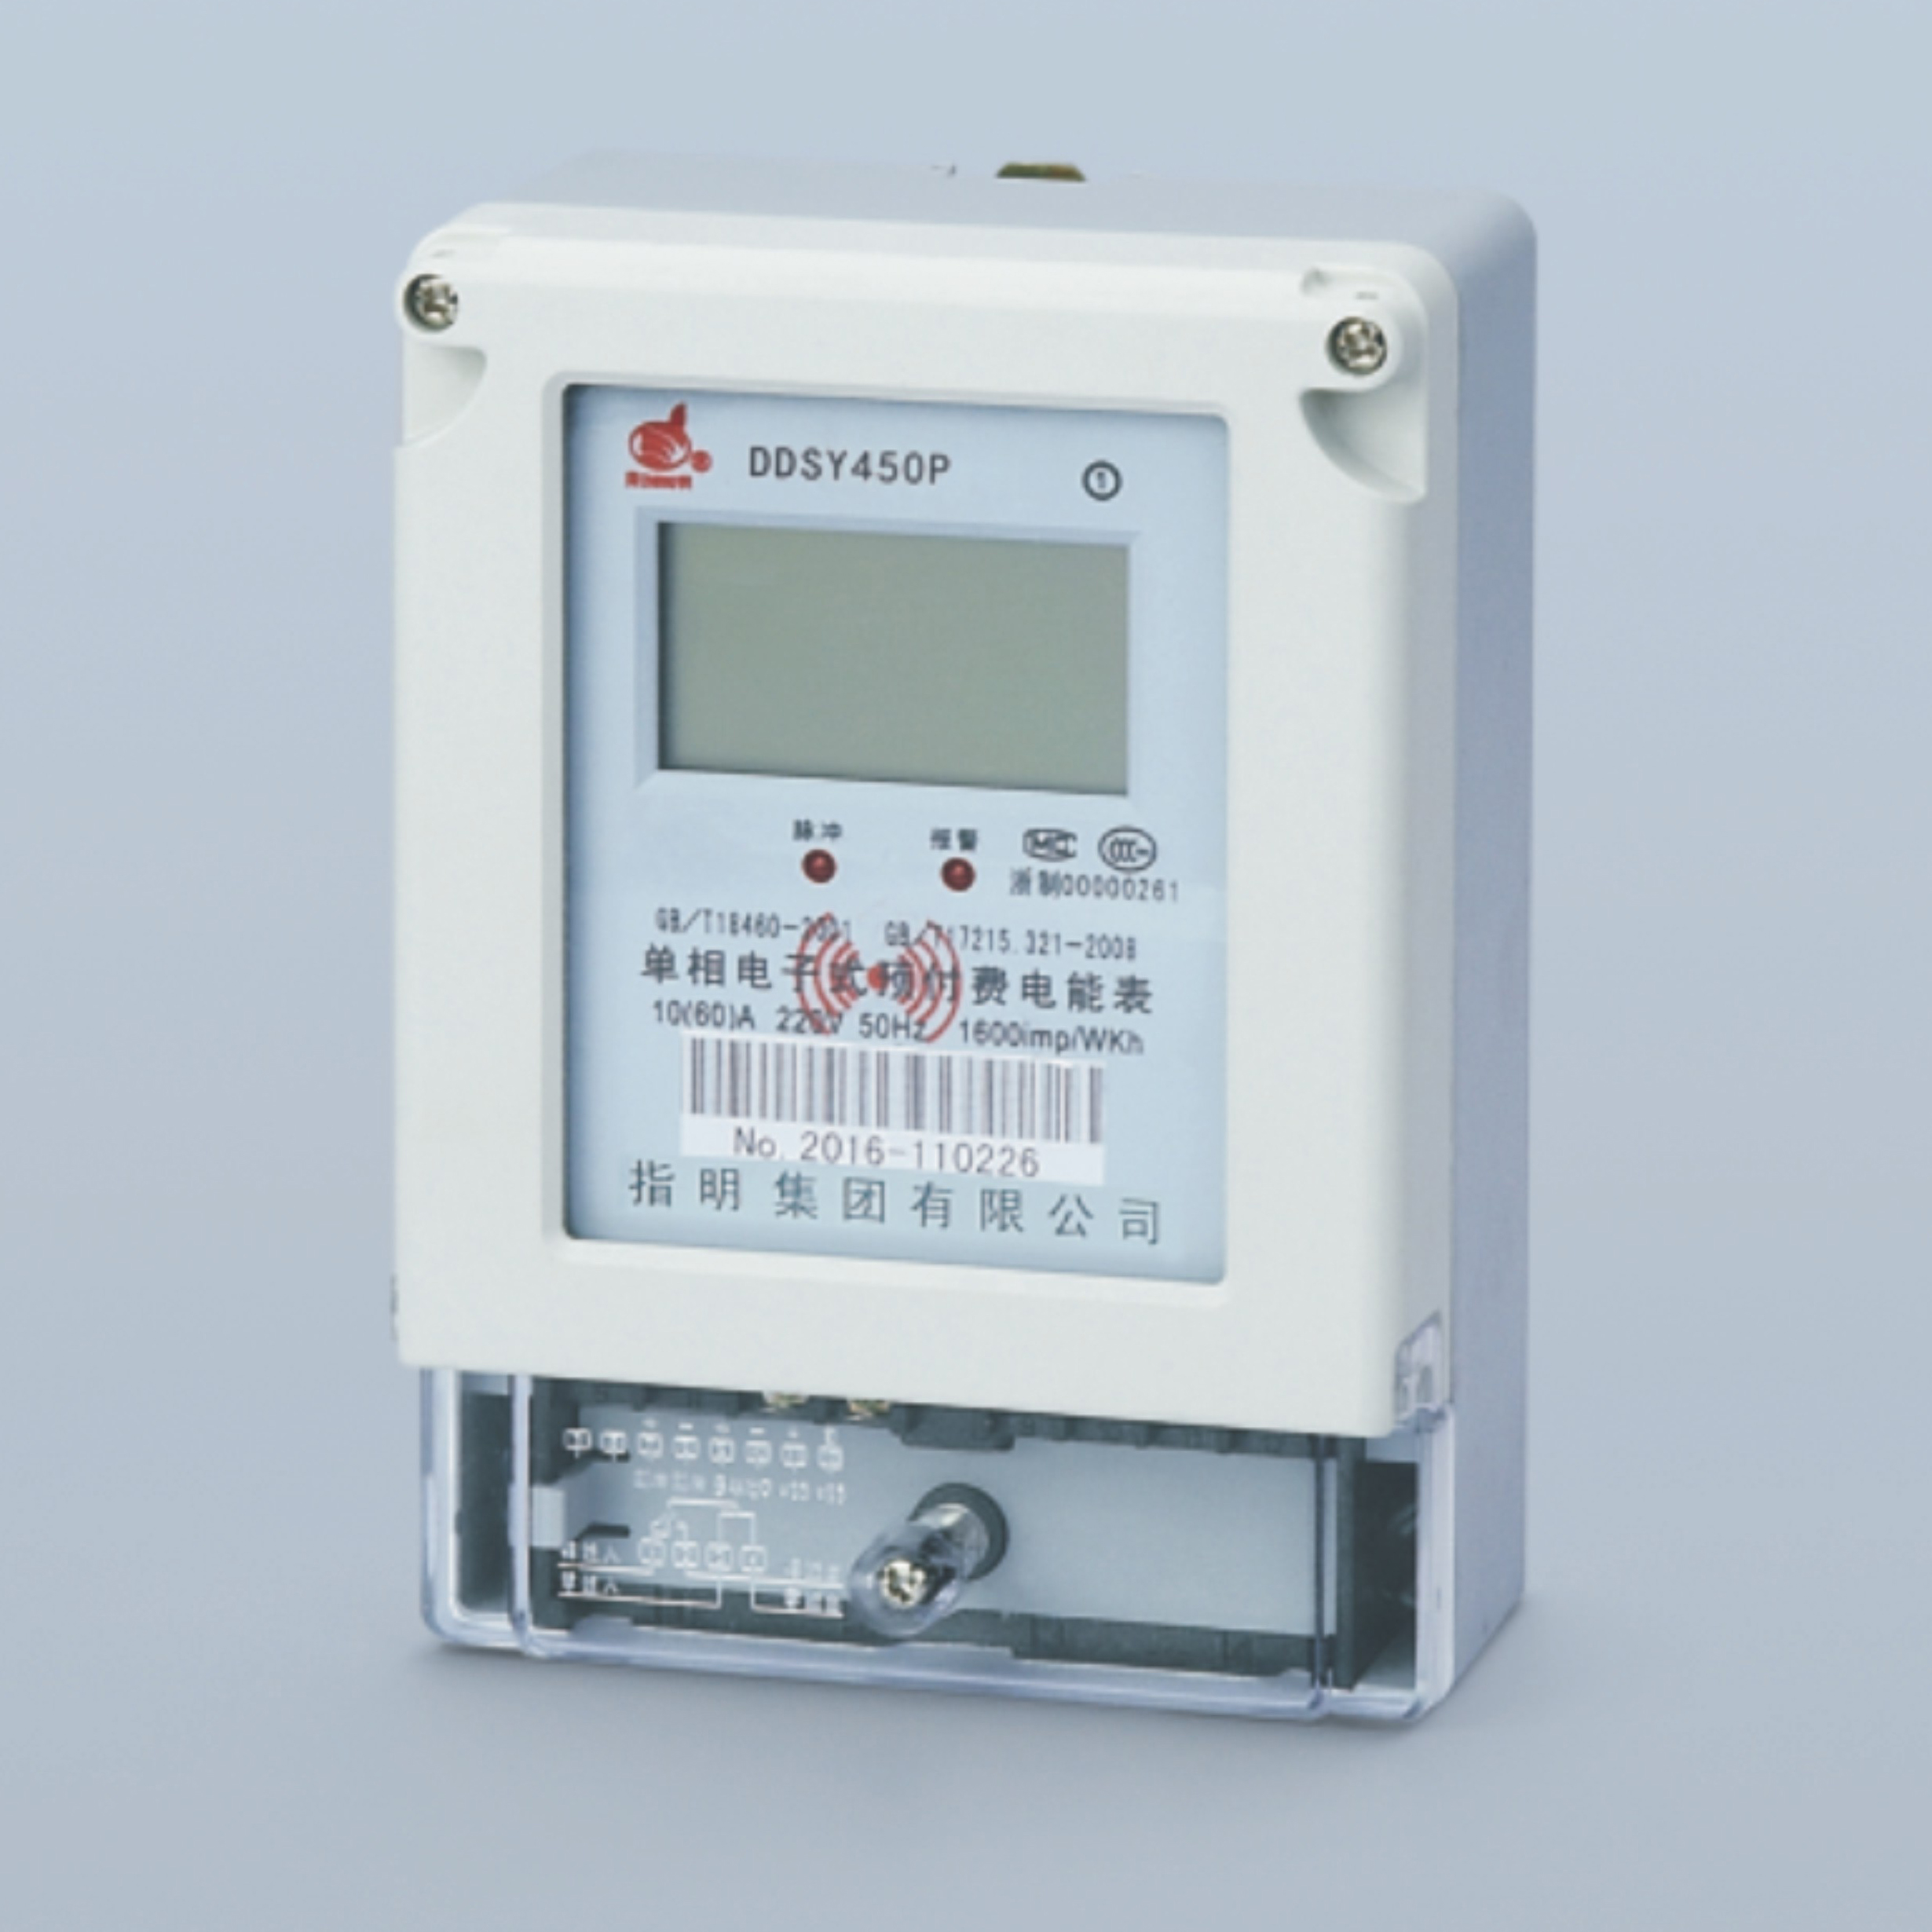 DDSY450P Single phase electronic prepaid energy meter with RFID card